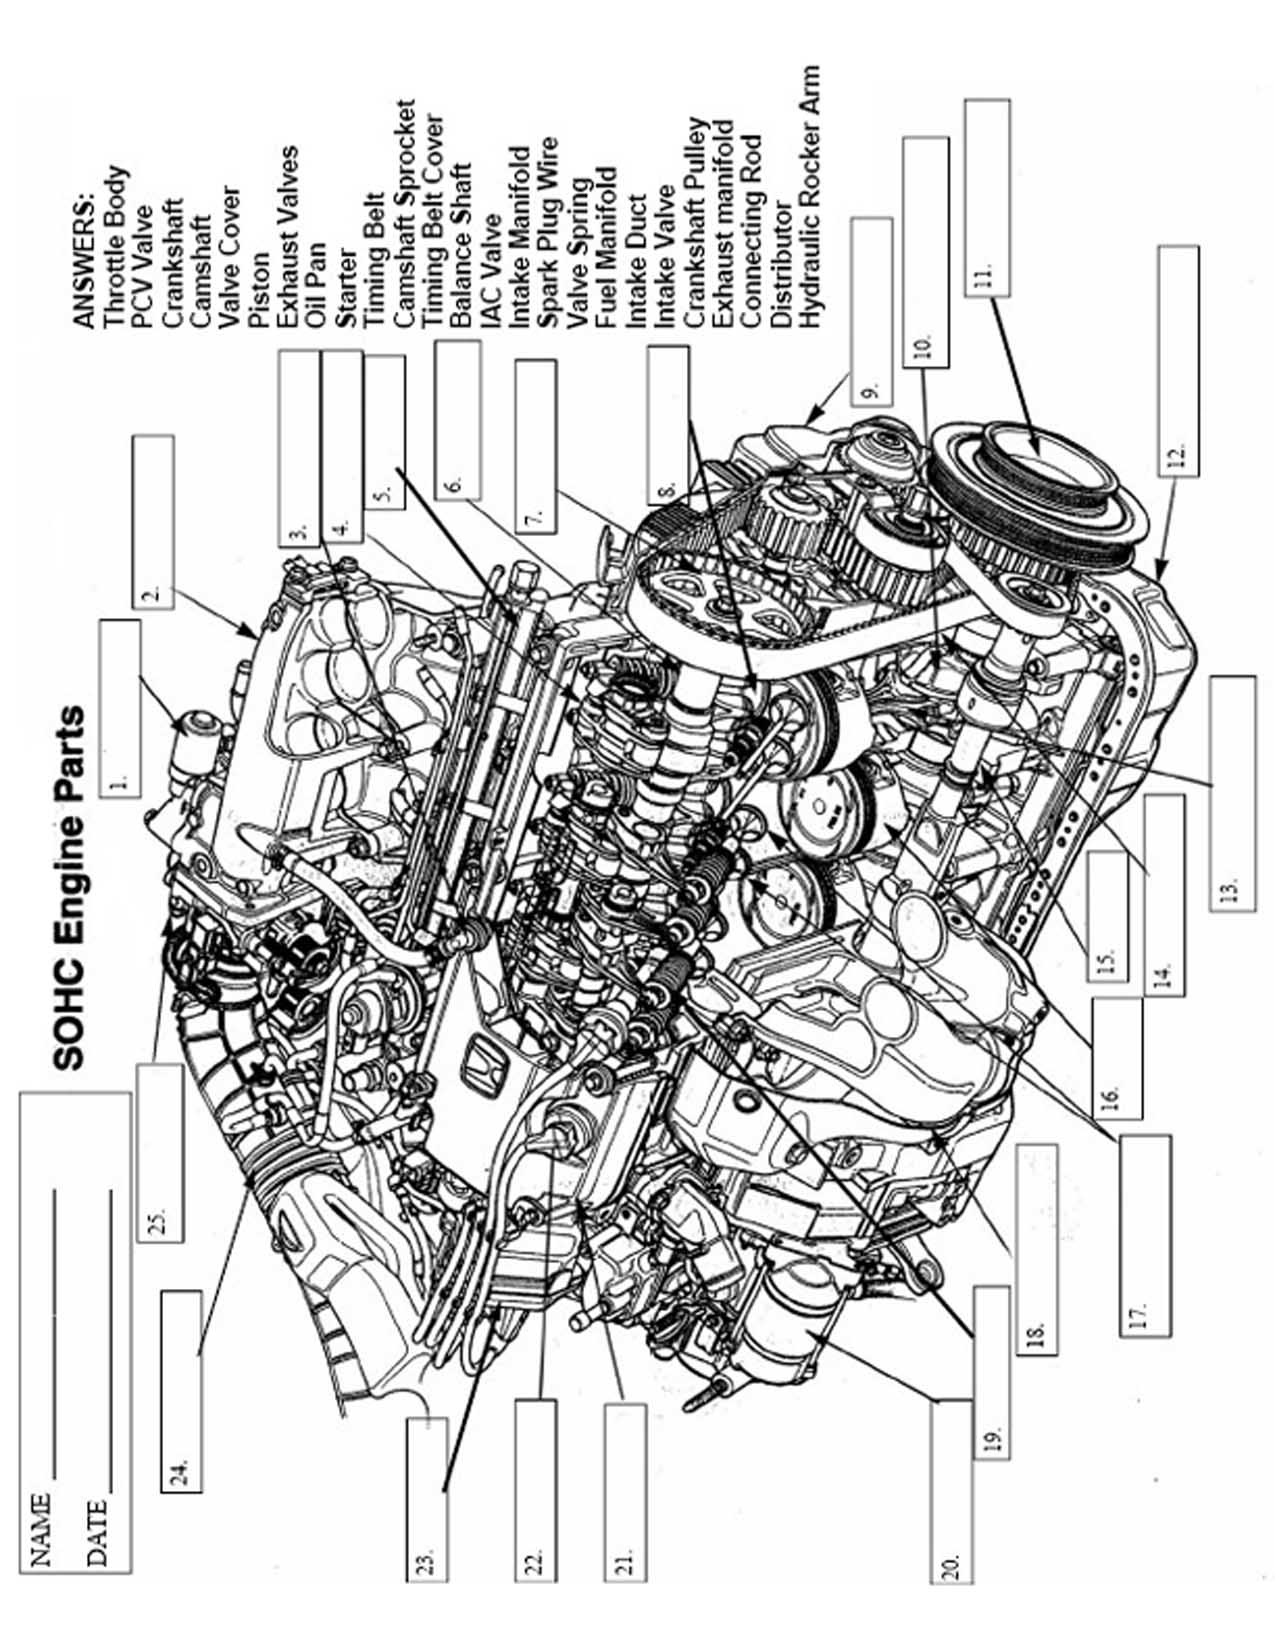 Valve On 2000 Buick Lesabre Engine Wiring Diagram Motorcycle And Car